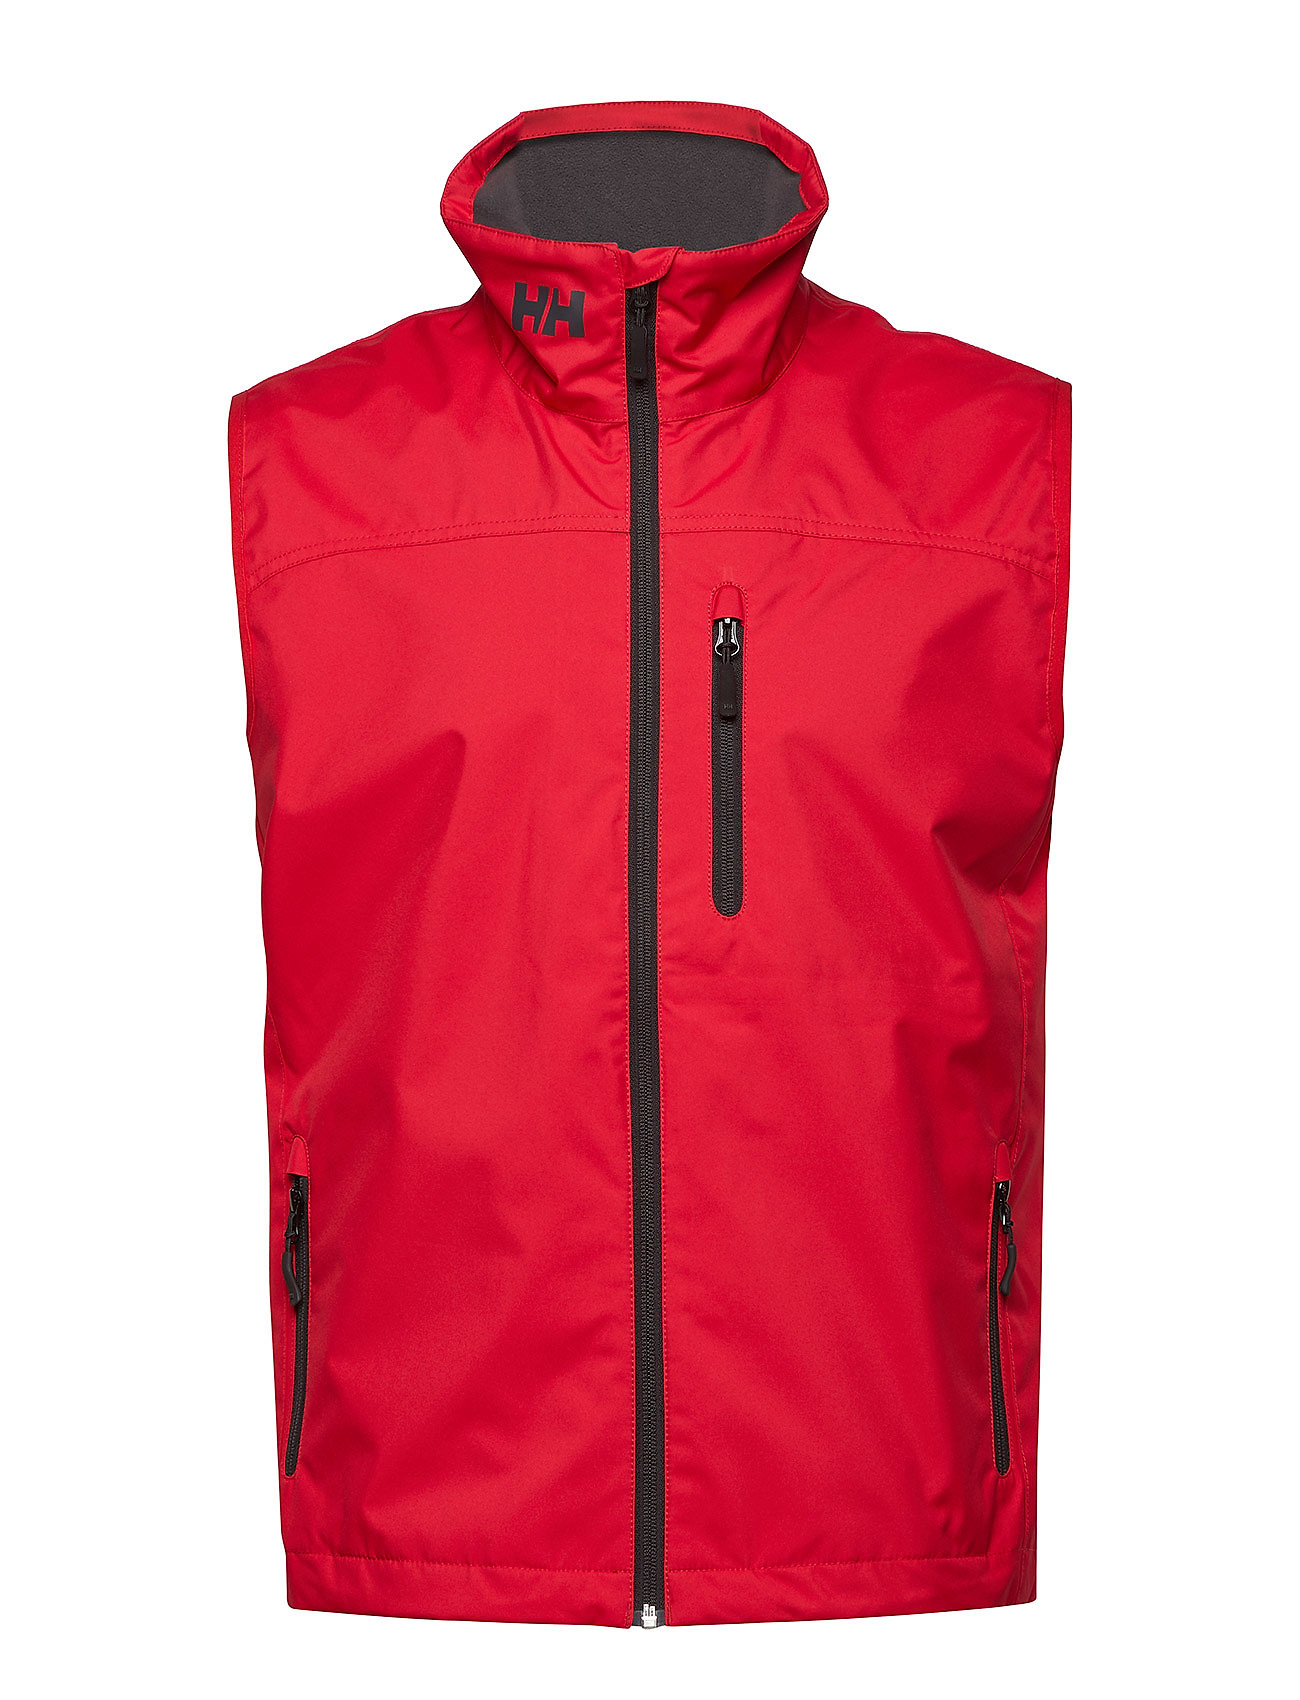 Helly Hansen CREW VEST - 162 RED